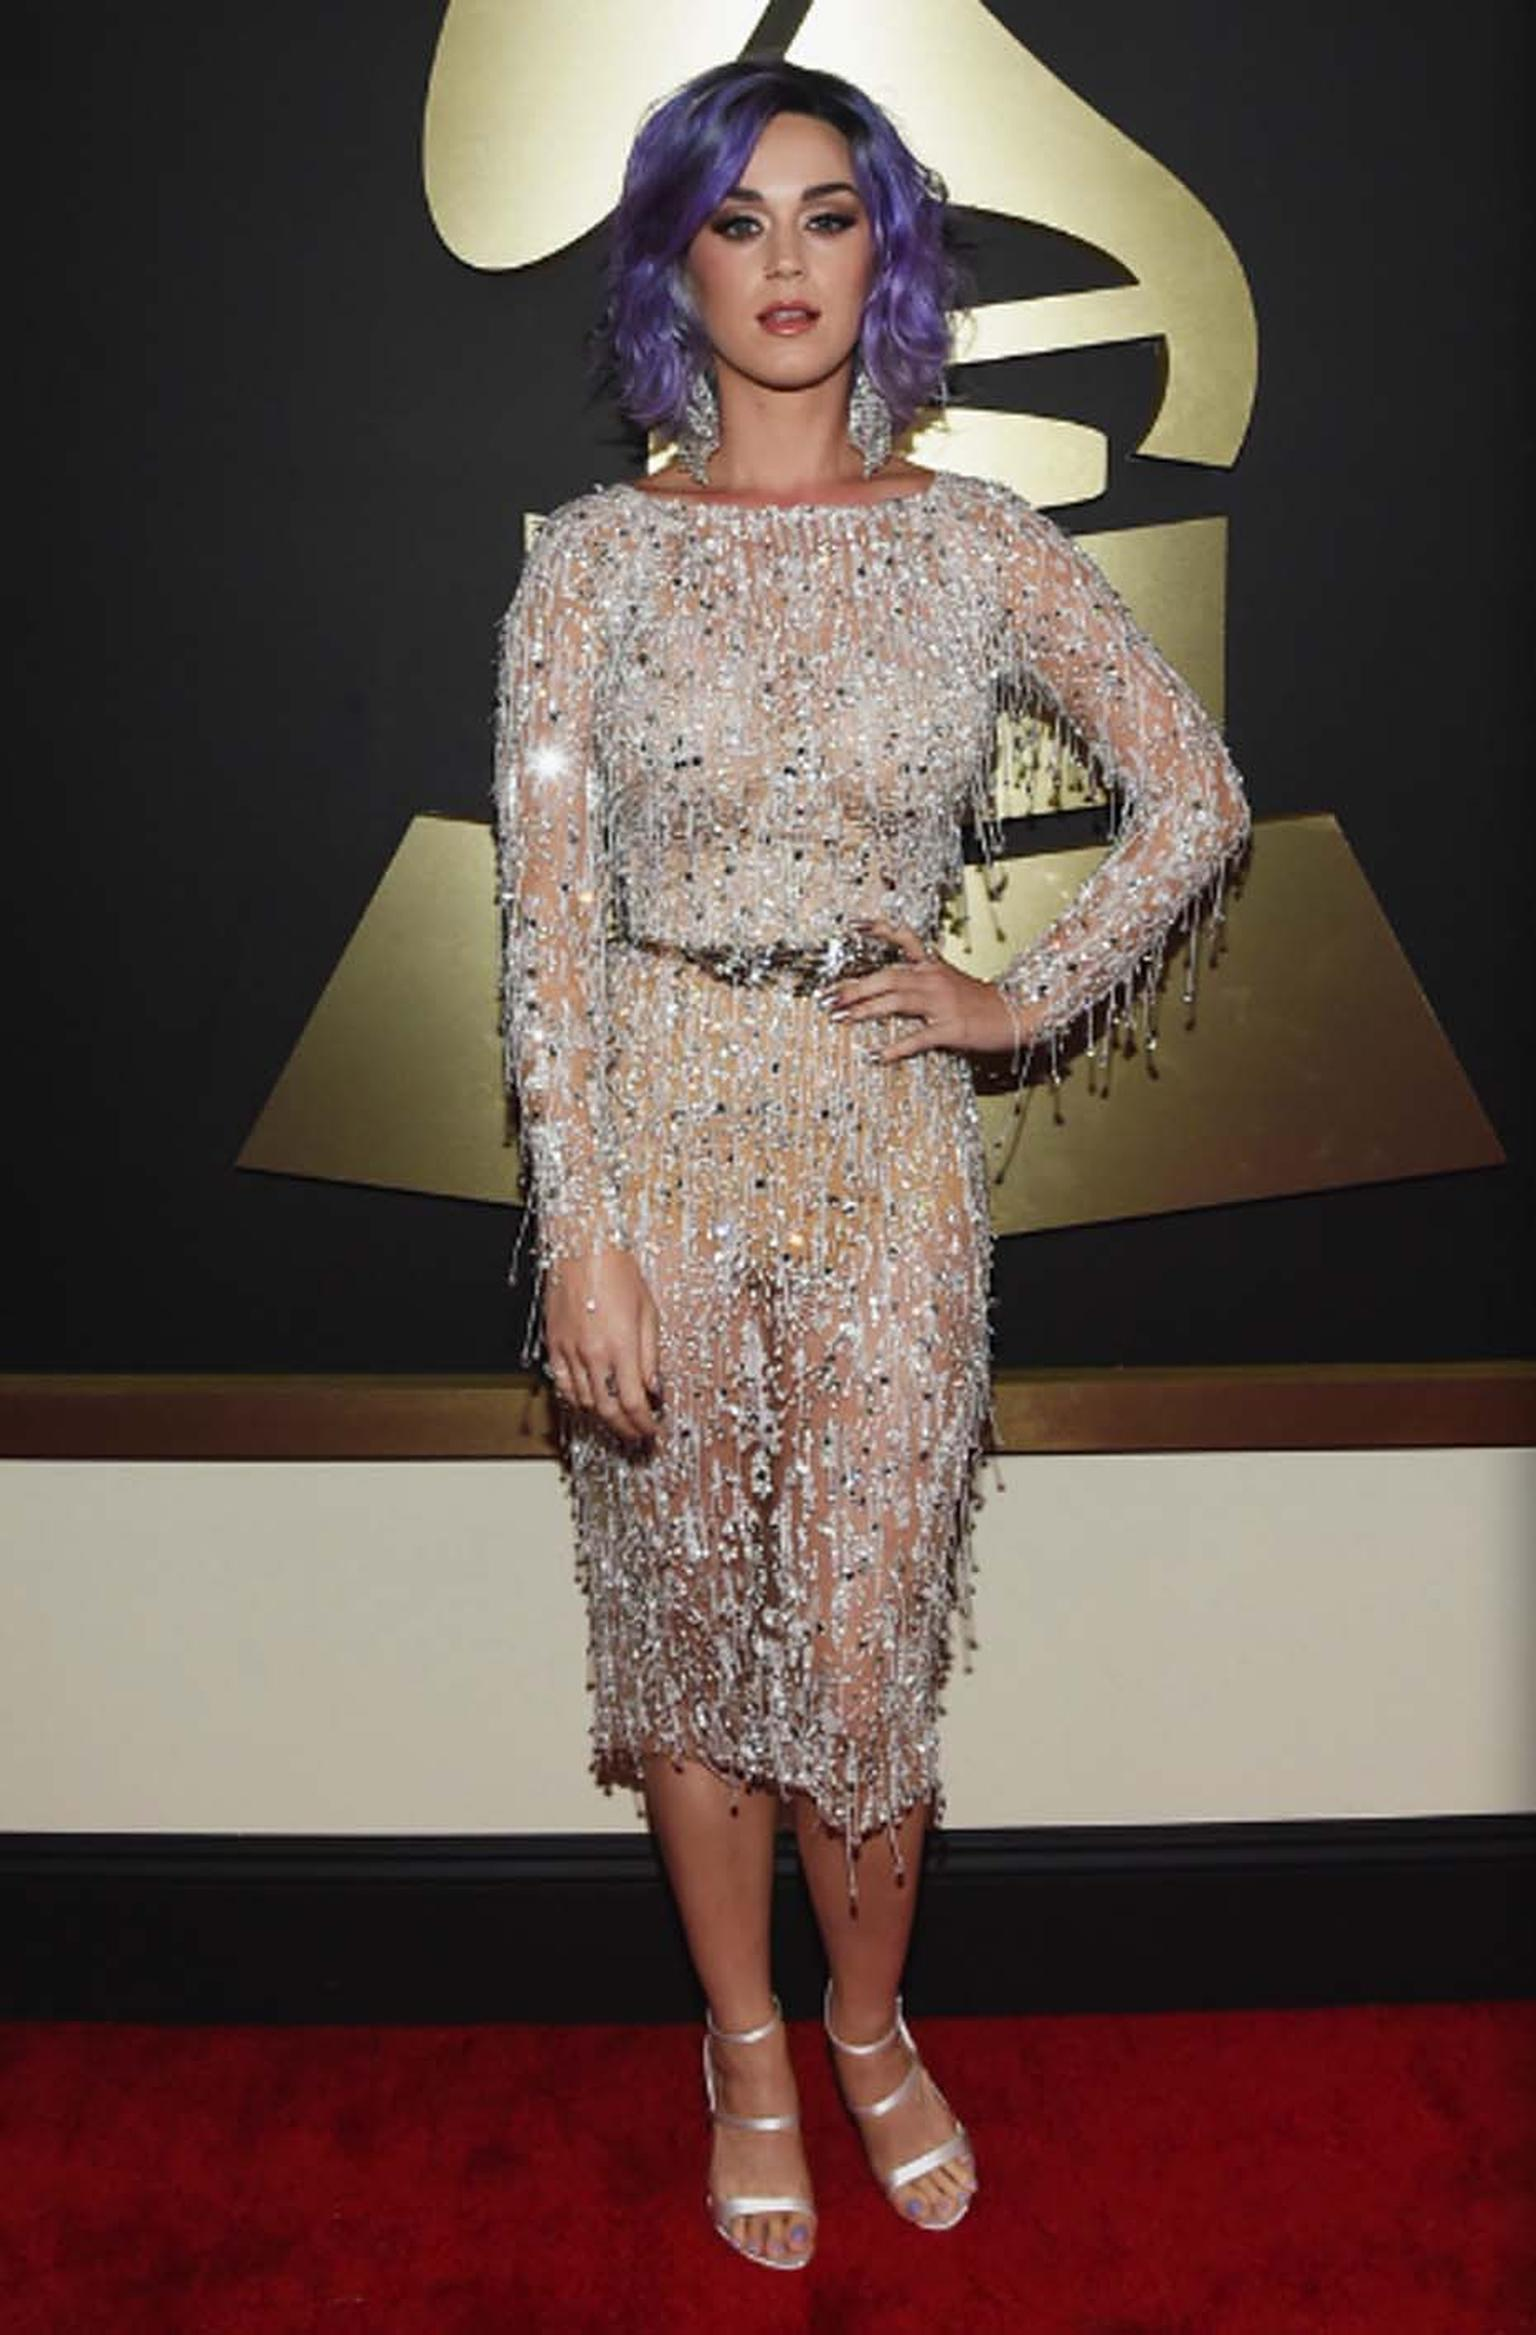 Singer Katy Perry added further sparkle to her red carpet jewelry with a Harry Kotlar canary-yellow diamond ring worth $2 million and a pair of oversized mesh diamond tassel earrings from Lorraine Schwartz at this year's Grammy awards.